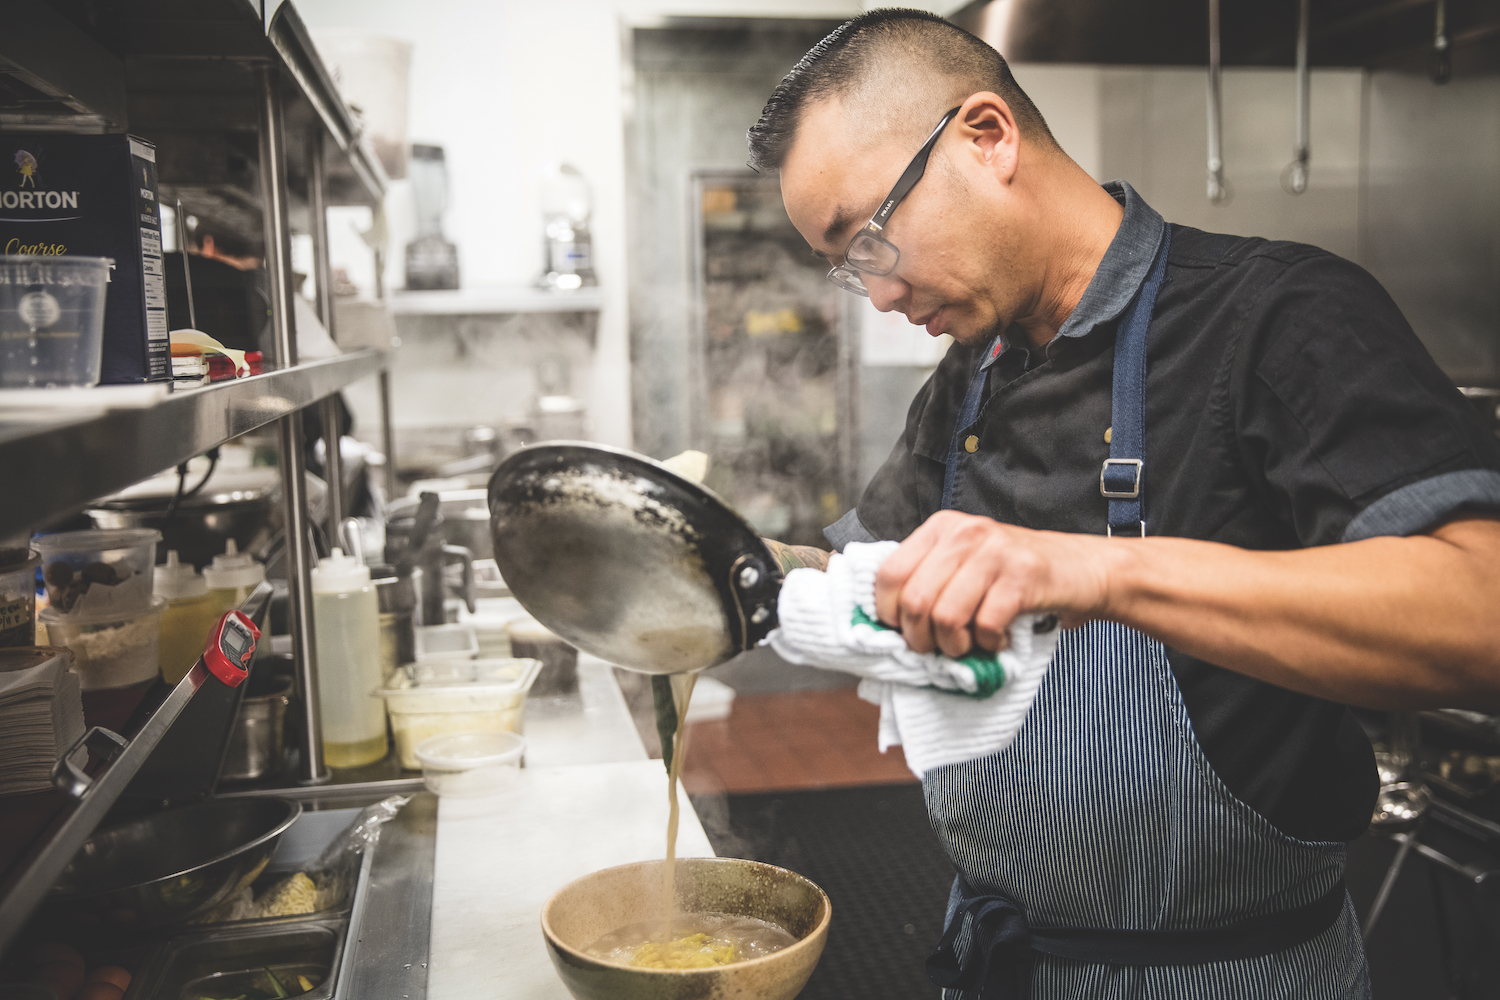 Ngo uses his noodles to create a ramen dish at Kru. (Photo by Max Whittaker)